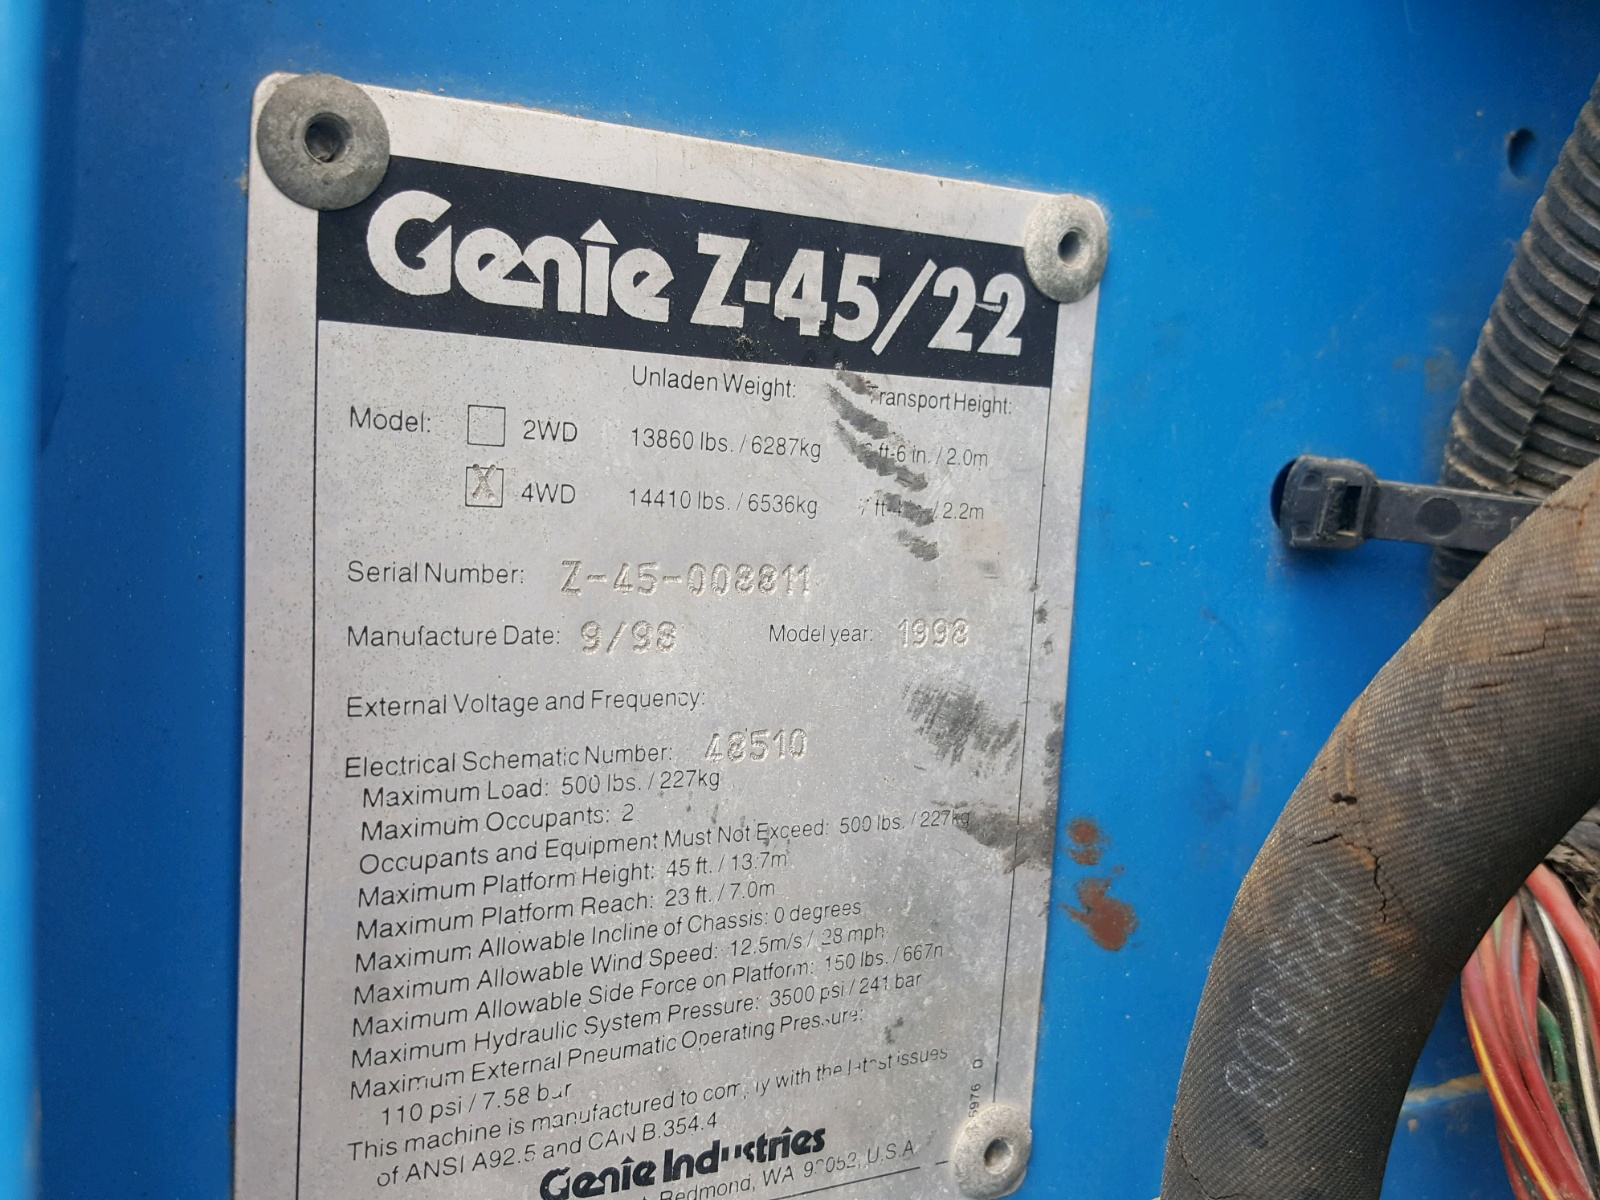 1998 Geni Lift Minor Dent Scratches Damage Z45008811 Sold Genie Wiring Diagrams Hydraulic And Pneumatic